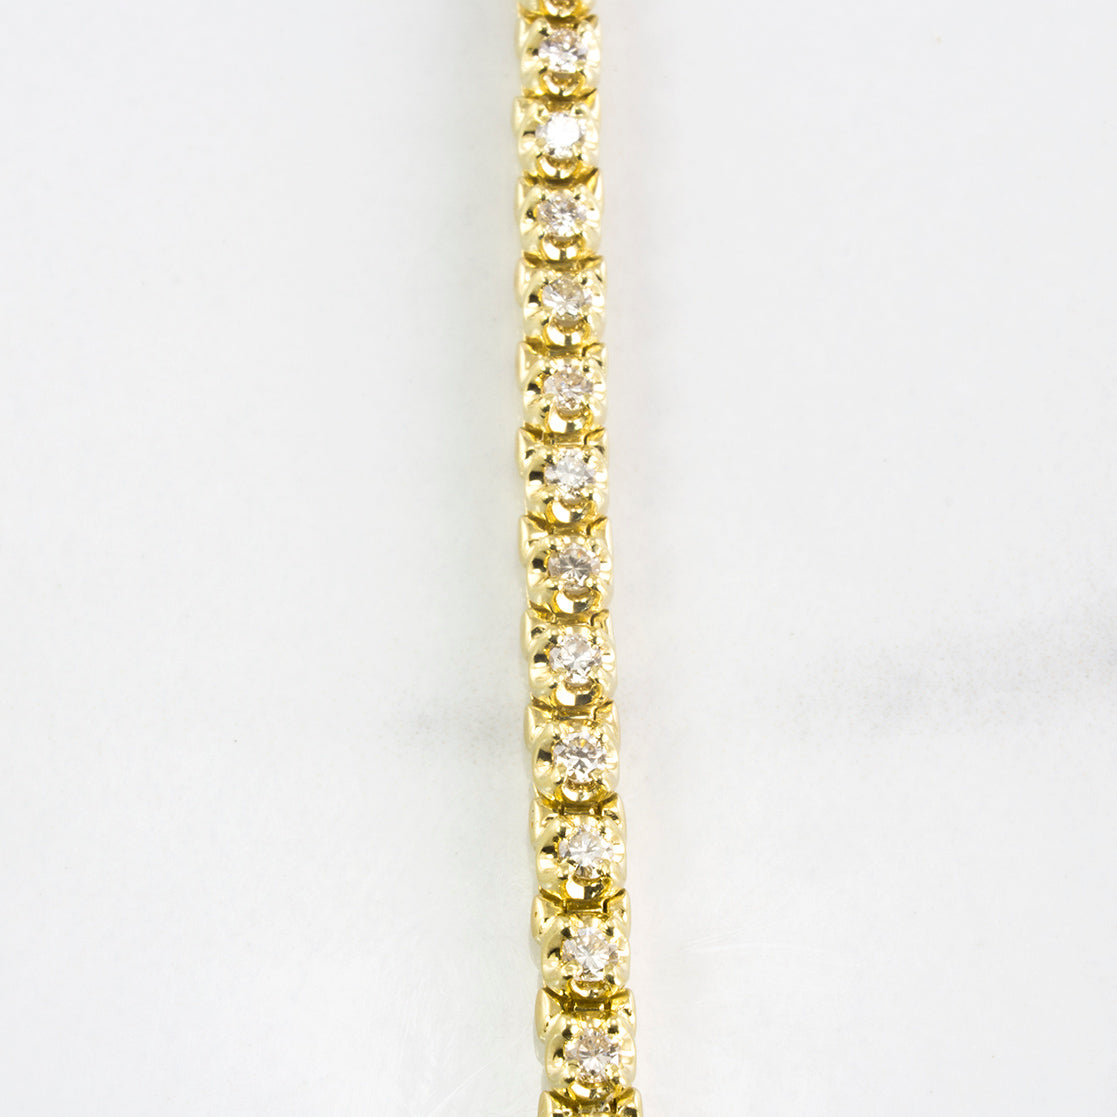 Diamond Tennis Bracelet | 1.17 ctw | SZ 7"